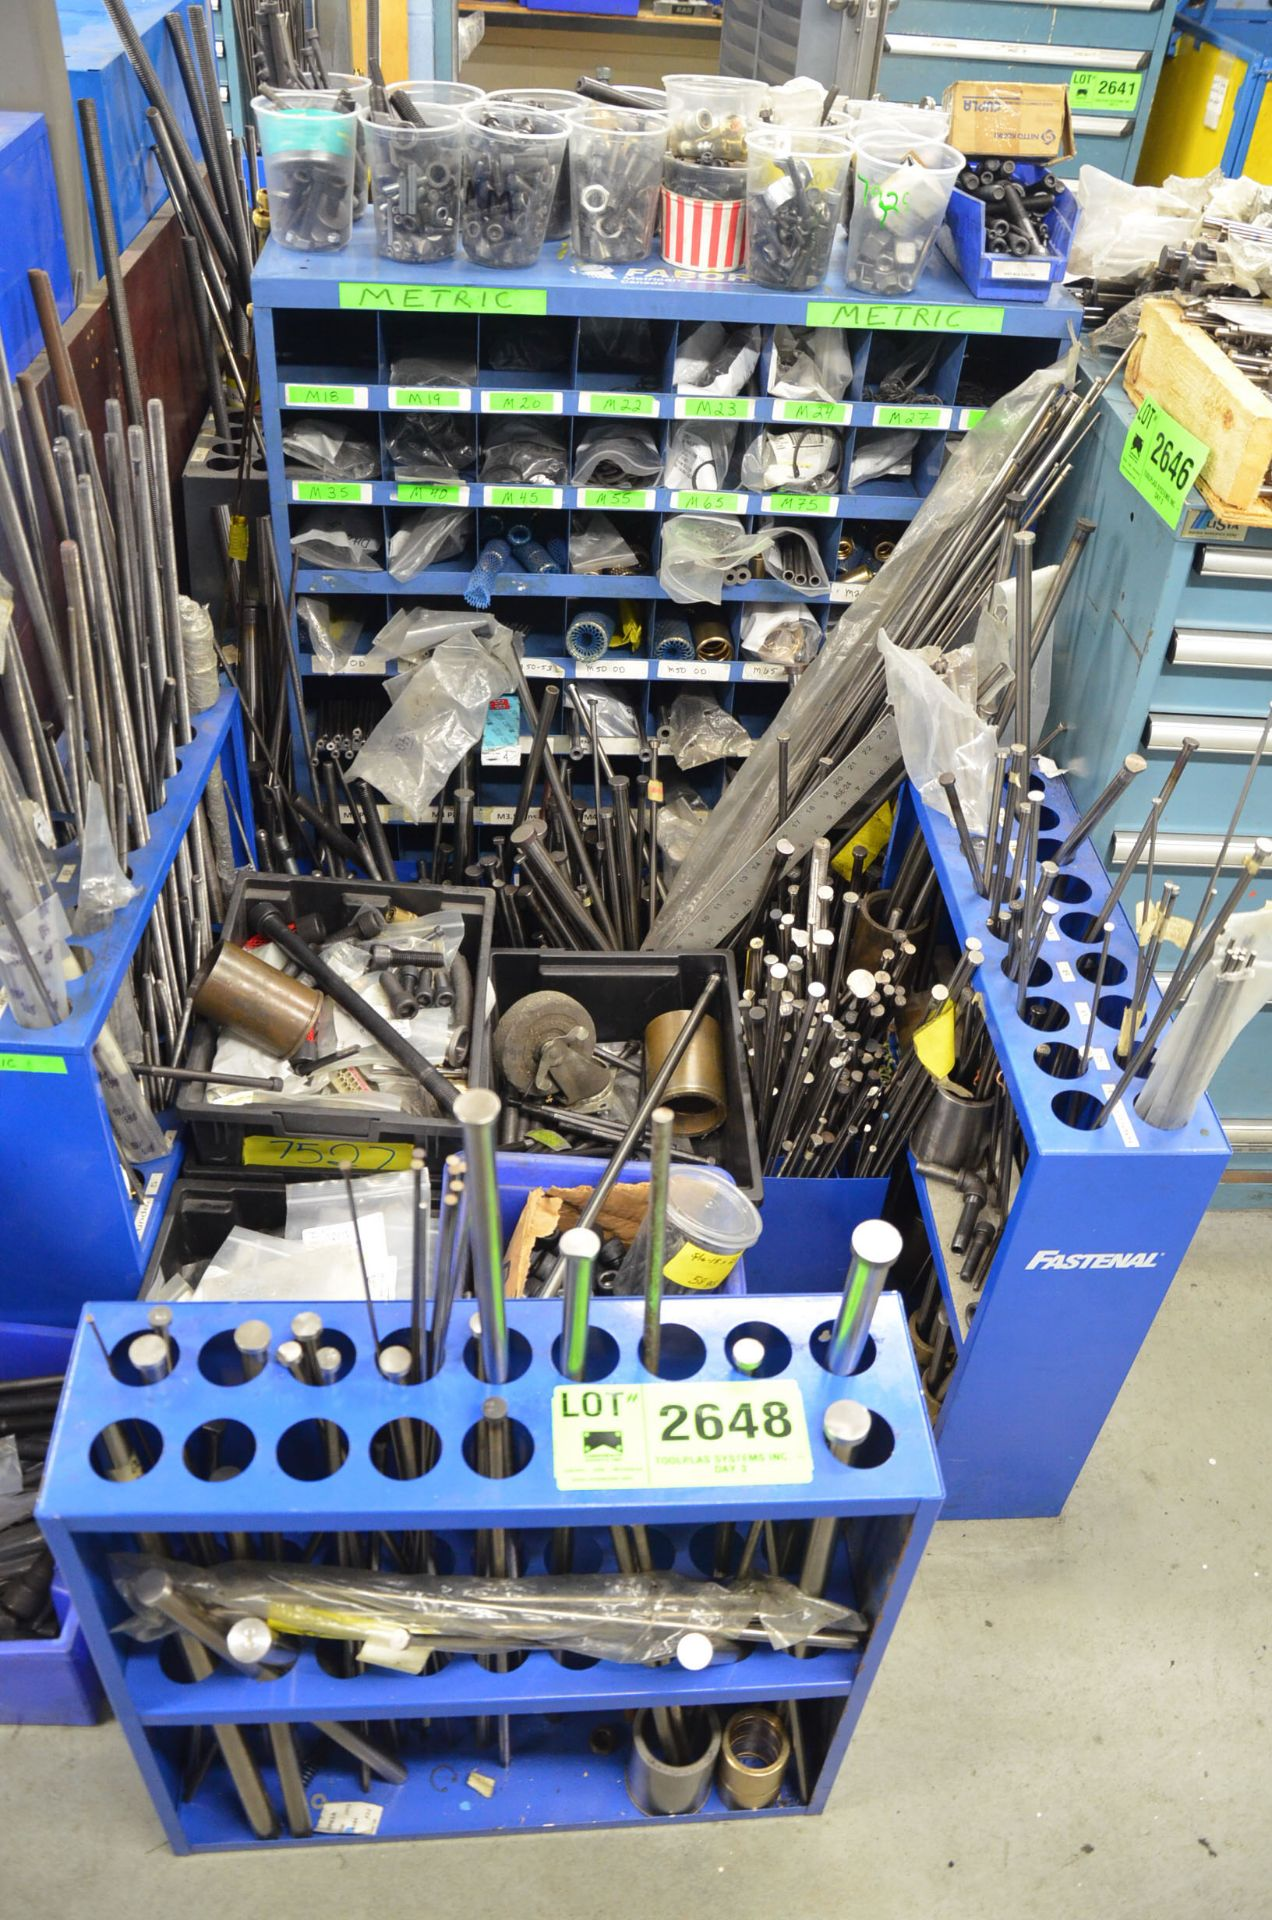 LOT/ EJECTOR PINS AND MOLD HARDWARE